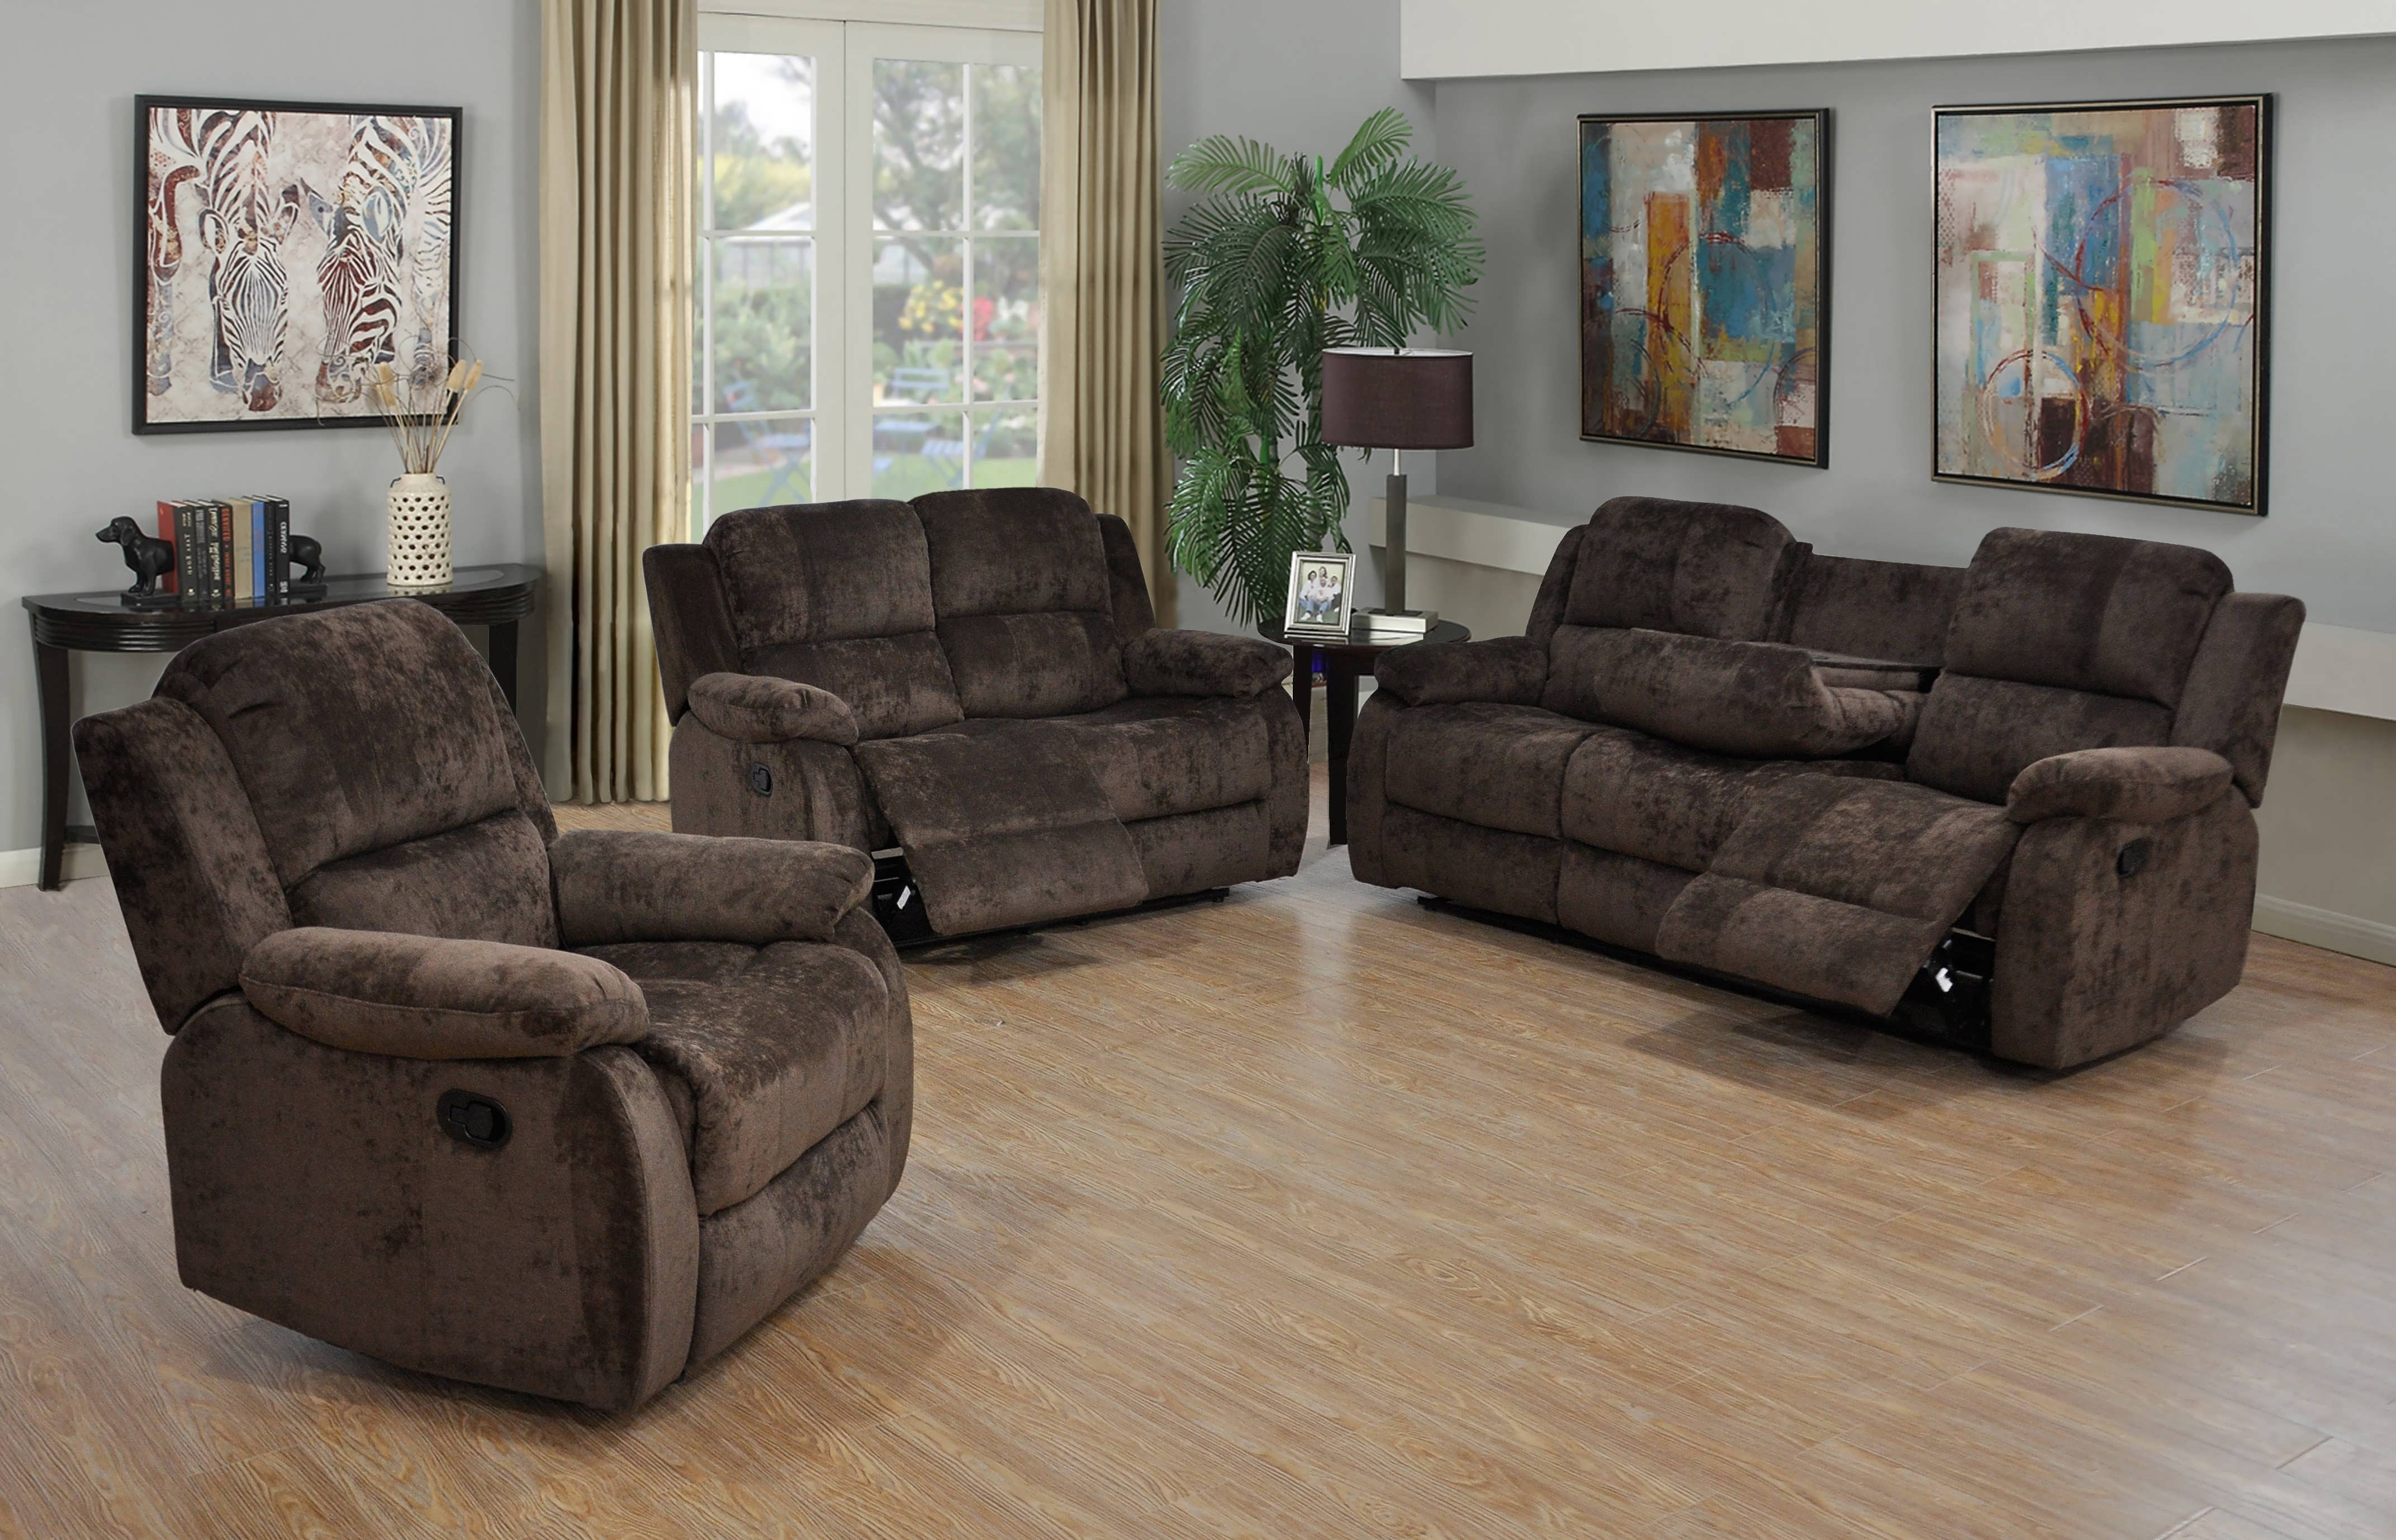 New Sofa Kijiji Sofa Ideas Kijiji Kitchener Sectional Sofas Explore 2 Of 10 Photos